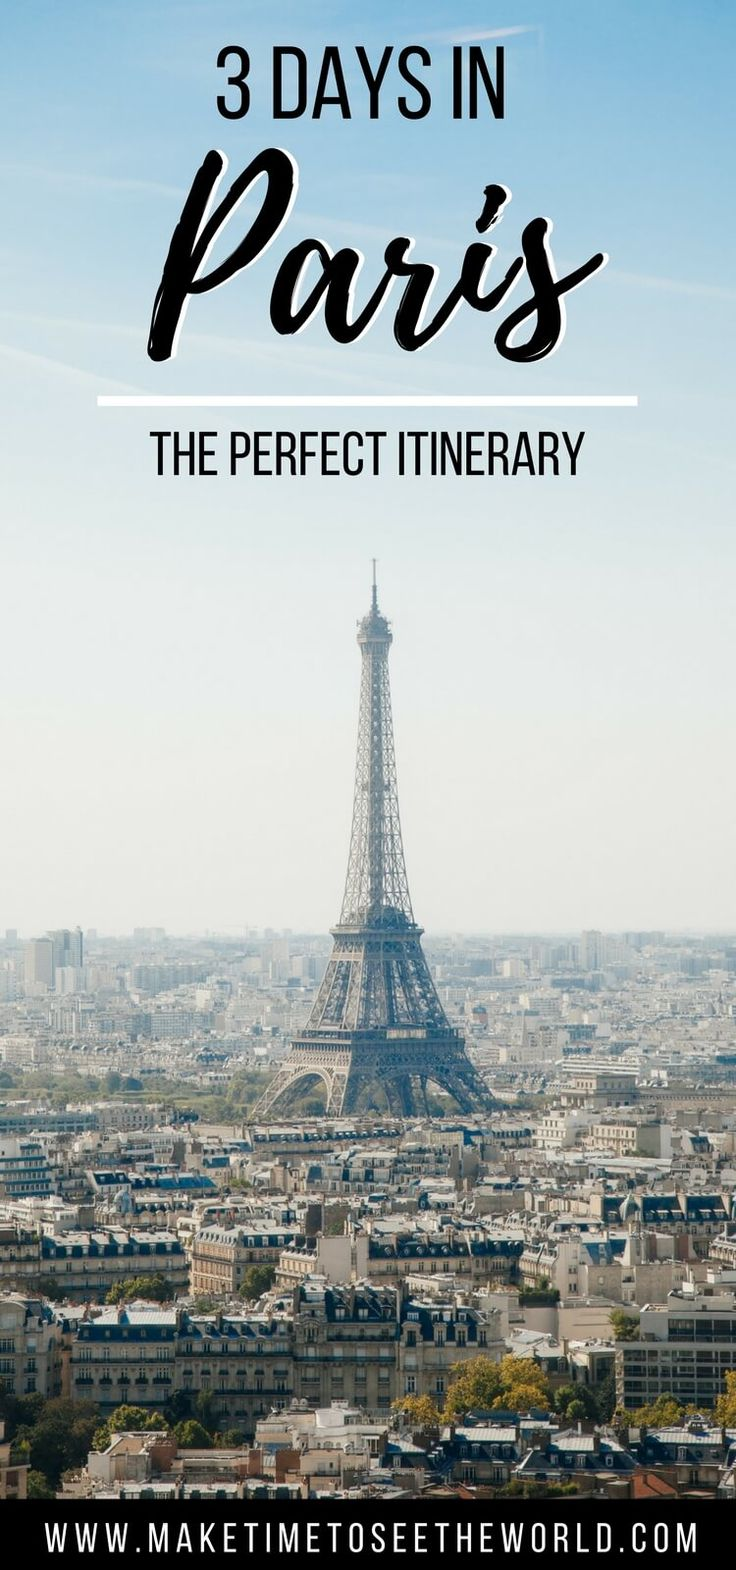 Whether you're planning a long weekend or 3 days in #Paris, this post is for you. Packed with ideas for what to do, where to stay and what to eat - as recommended by a local - let us give you the inside scoop on all things Parisian *** #Paris #France - Paris Itinerary   3 days in Paris   Things to do in Paris   Paris Travel   Paris Travel Tips   Paris Travel Places   Paris Travel Guide   Paris Travel Things to do   Paris Weekend